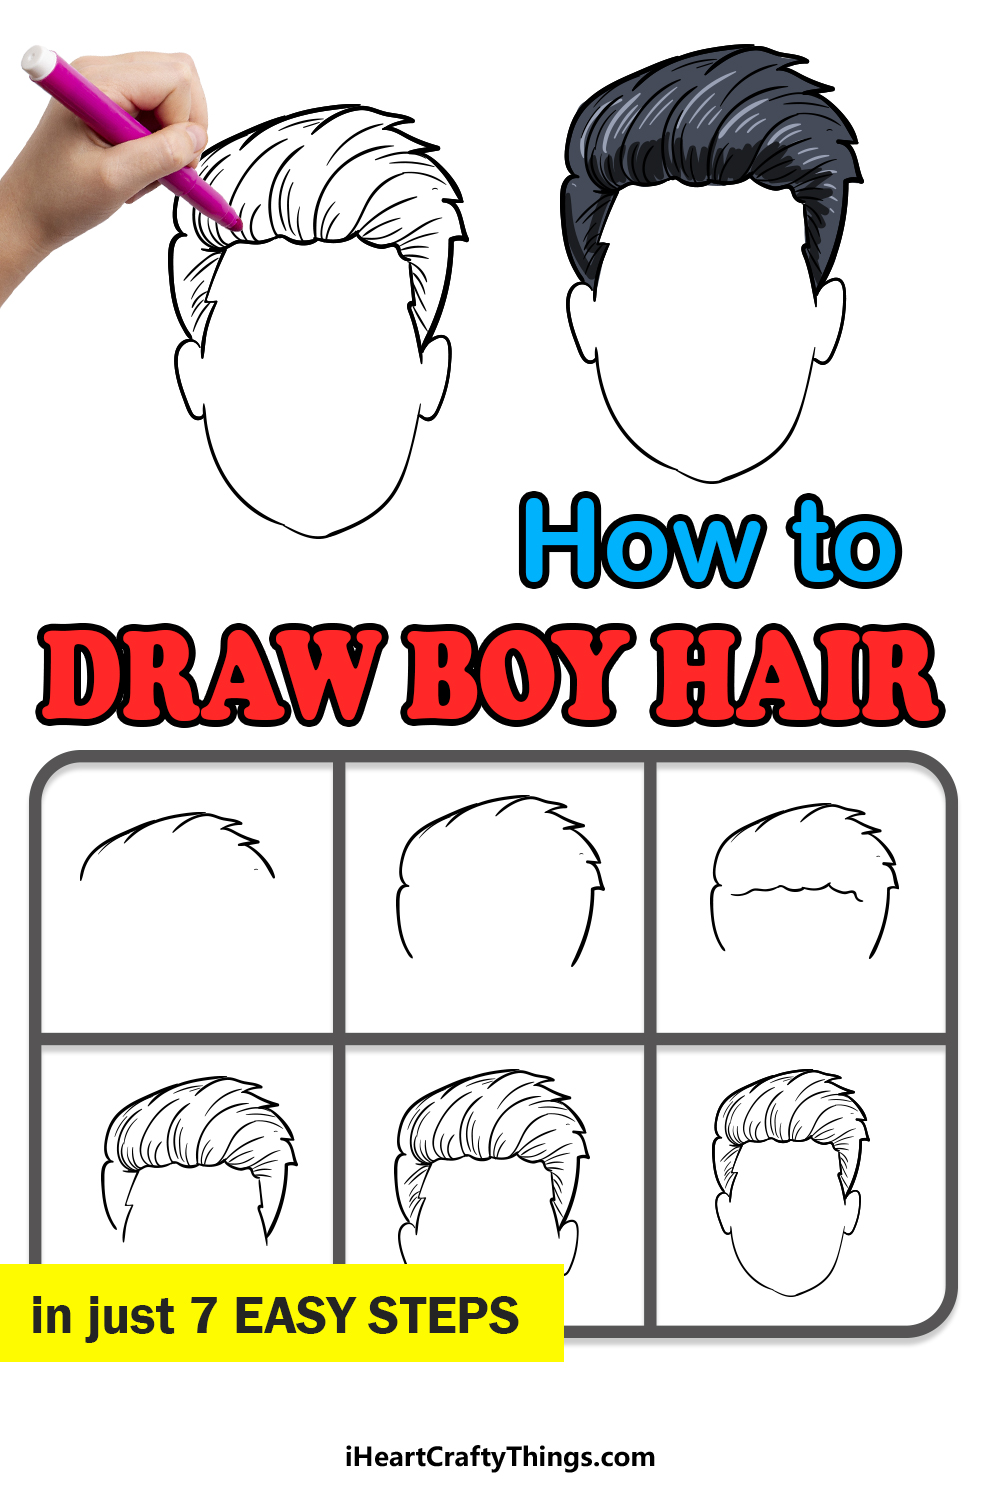 how to draw boy hair in 7 easy steps